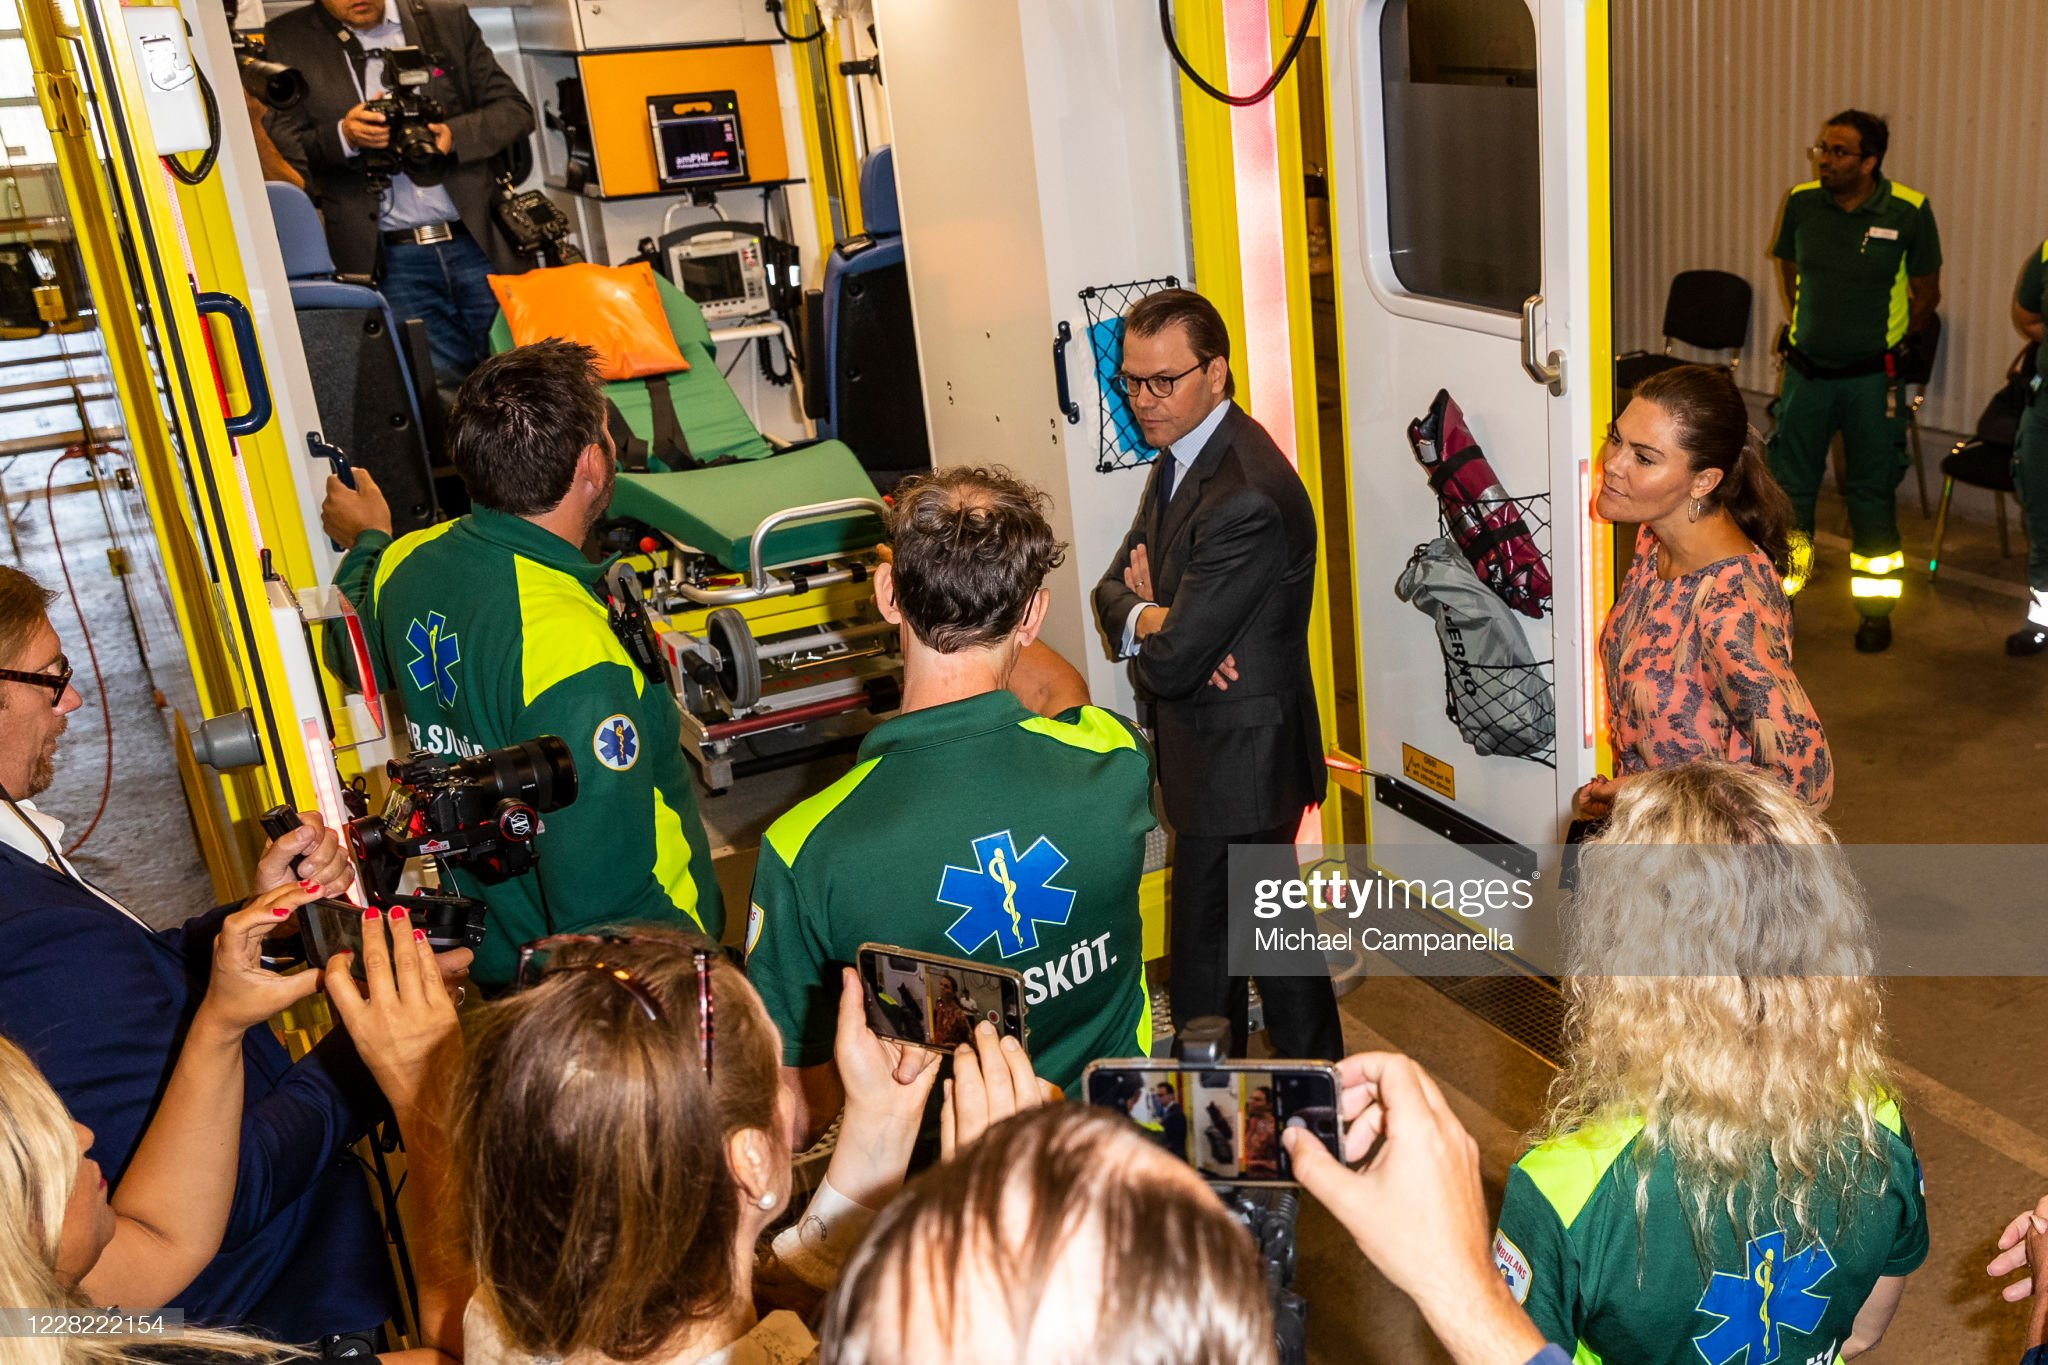 crown-princess-victoria-and-prince-daniel-of-sweden-visit-an-station-picture-id1228222154